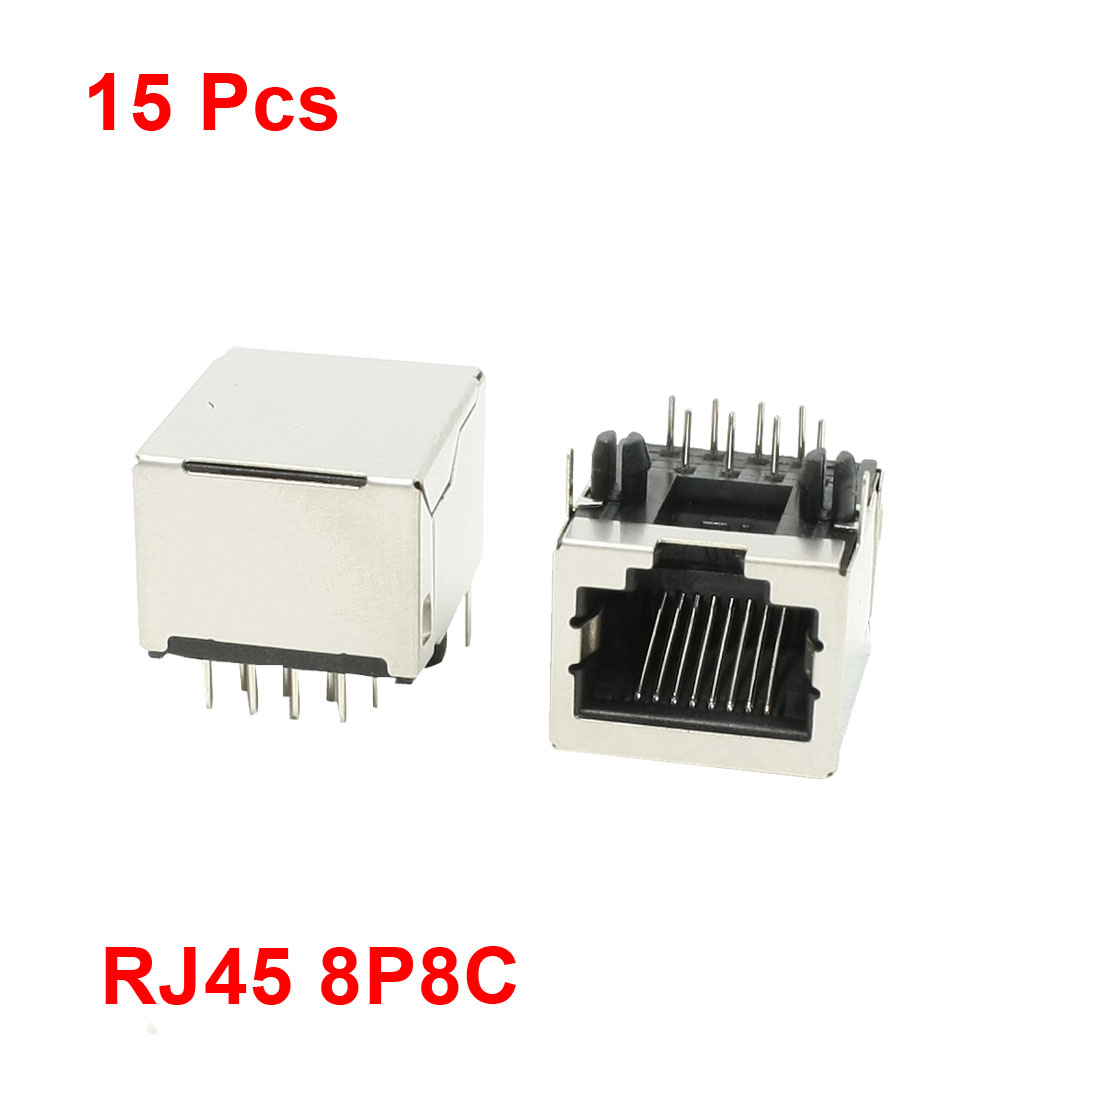 PCB Mounting 8 Right Angle Pins RJ45 Jacks Connectors 15 Pcs